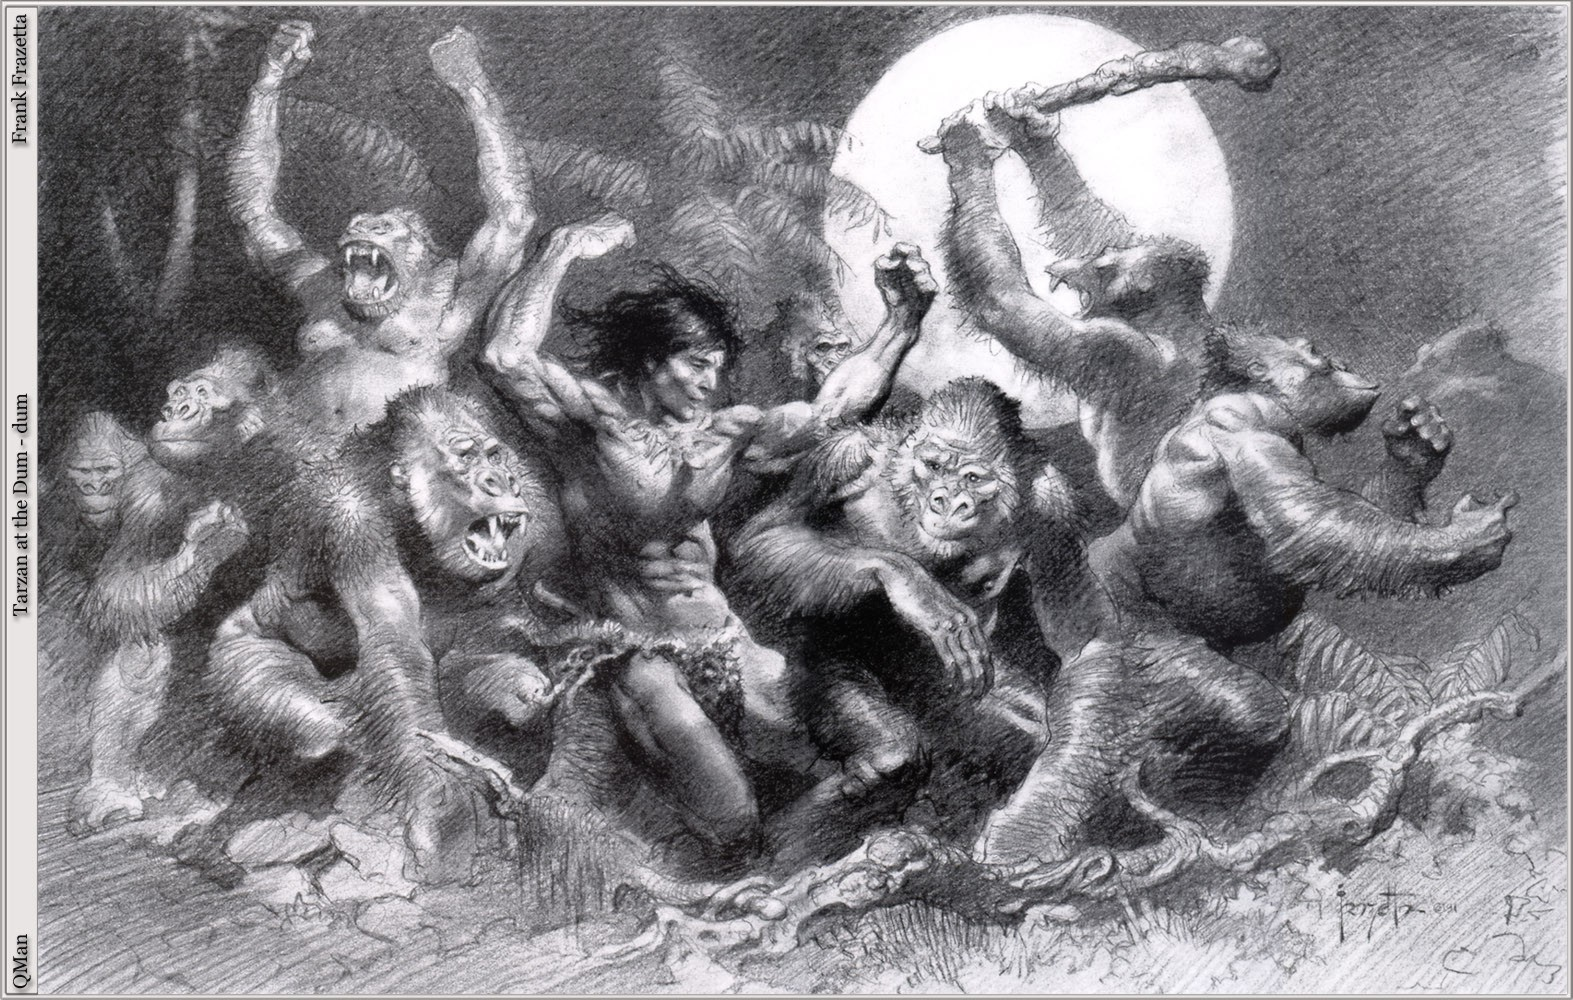 apes tarzan monochrome gorillas frank frazetta HD Wallpaper of General 1573x1000